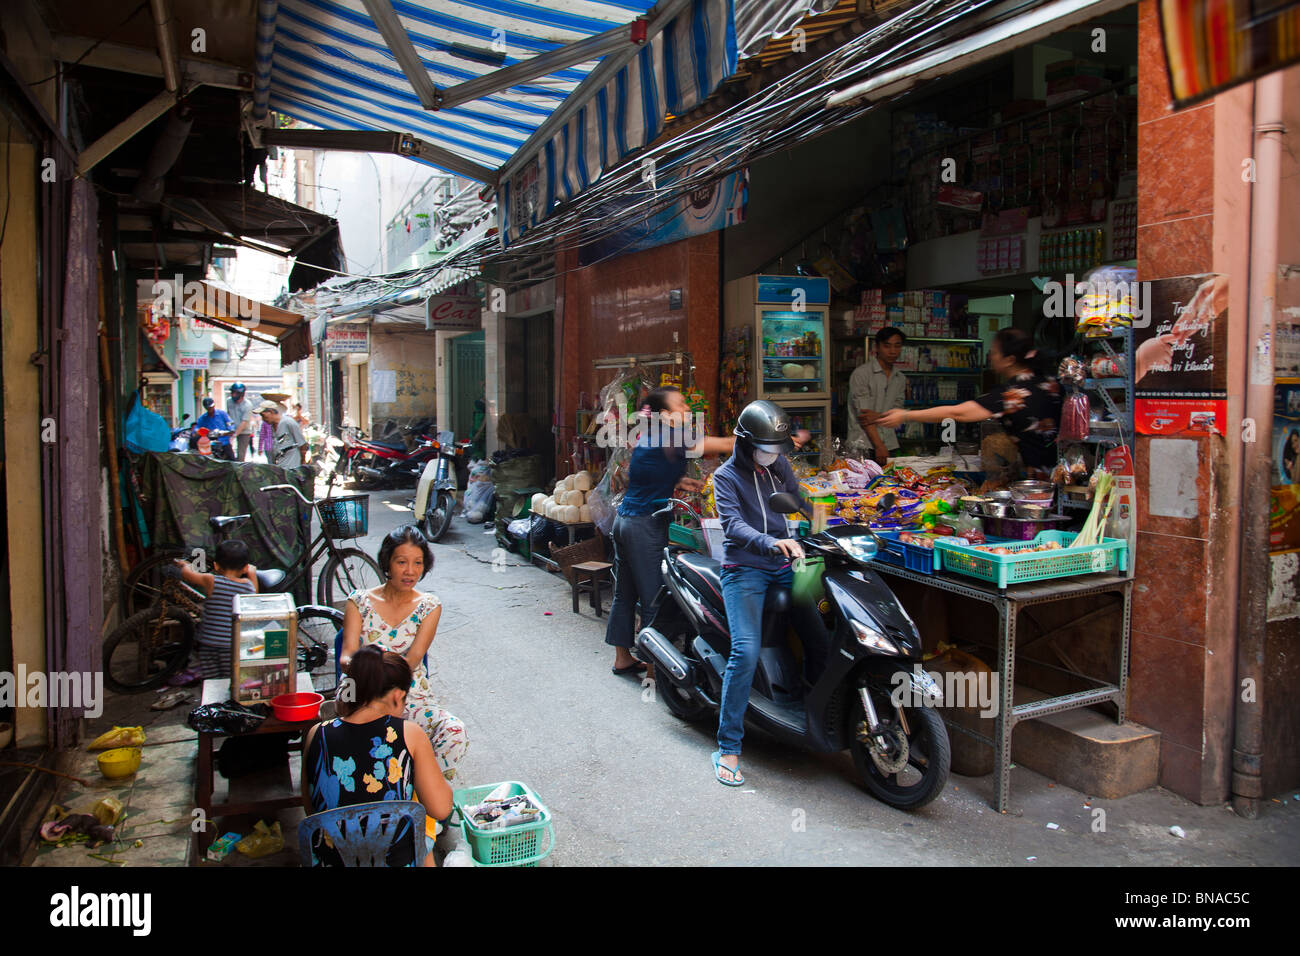 Busy lane with people and shops and restaurants - Stock Image